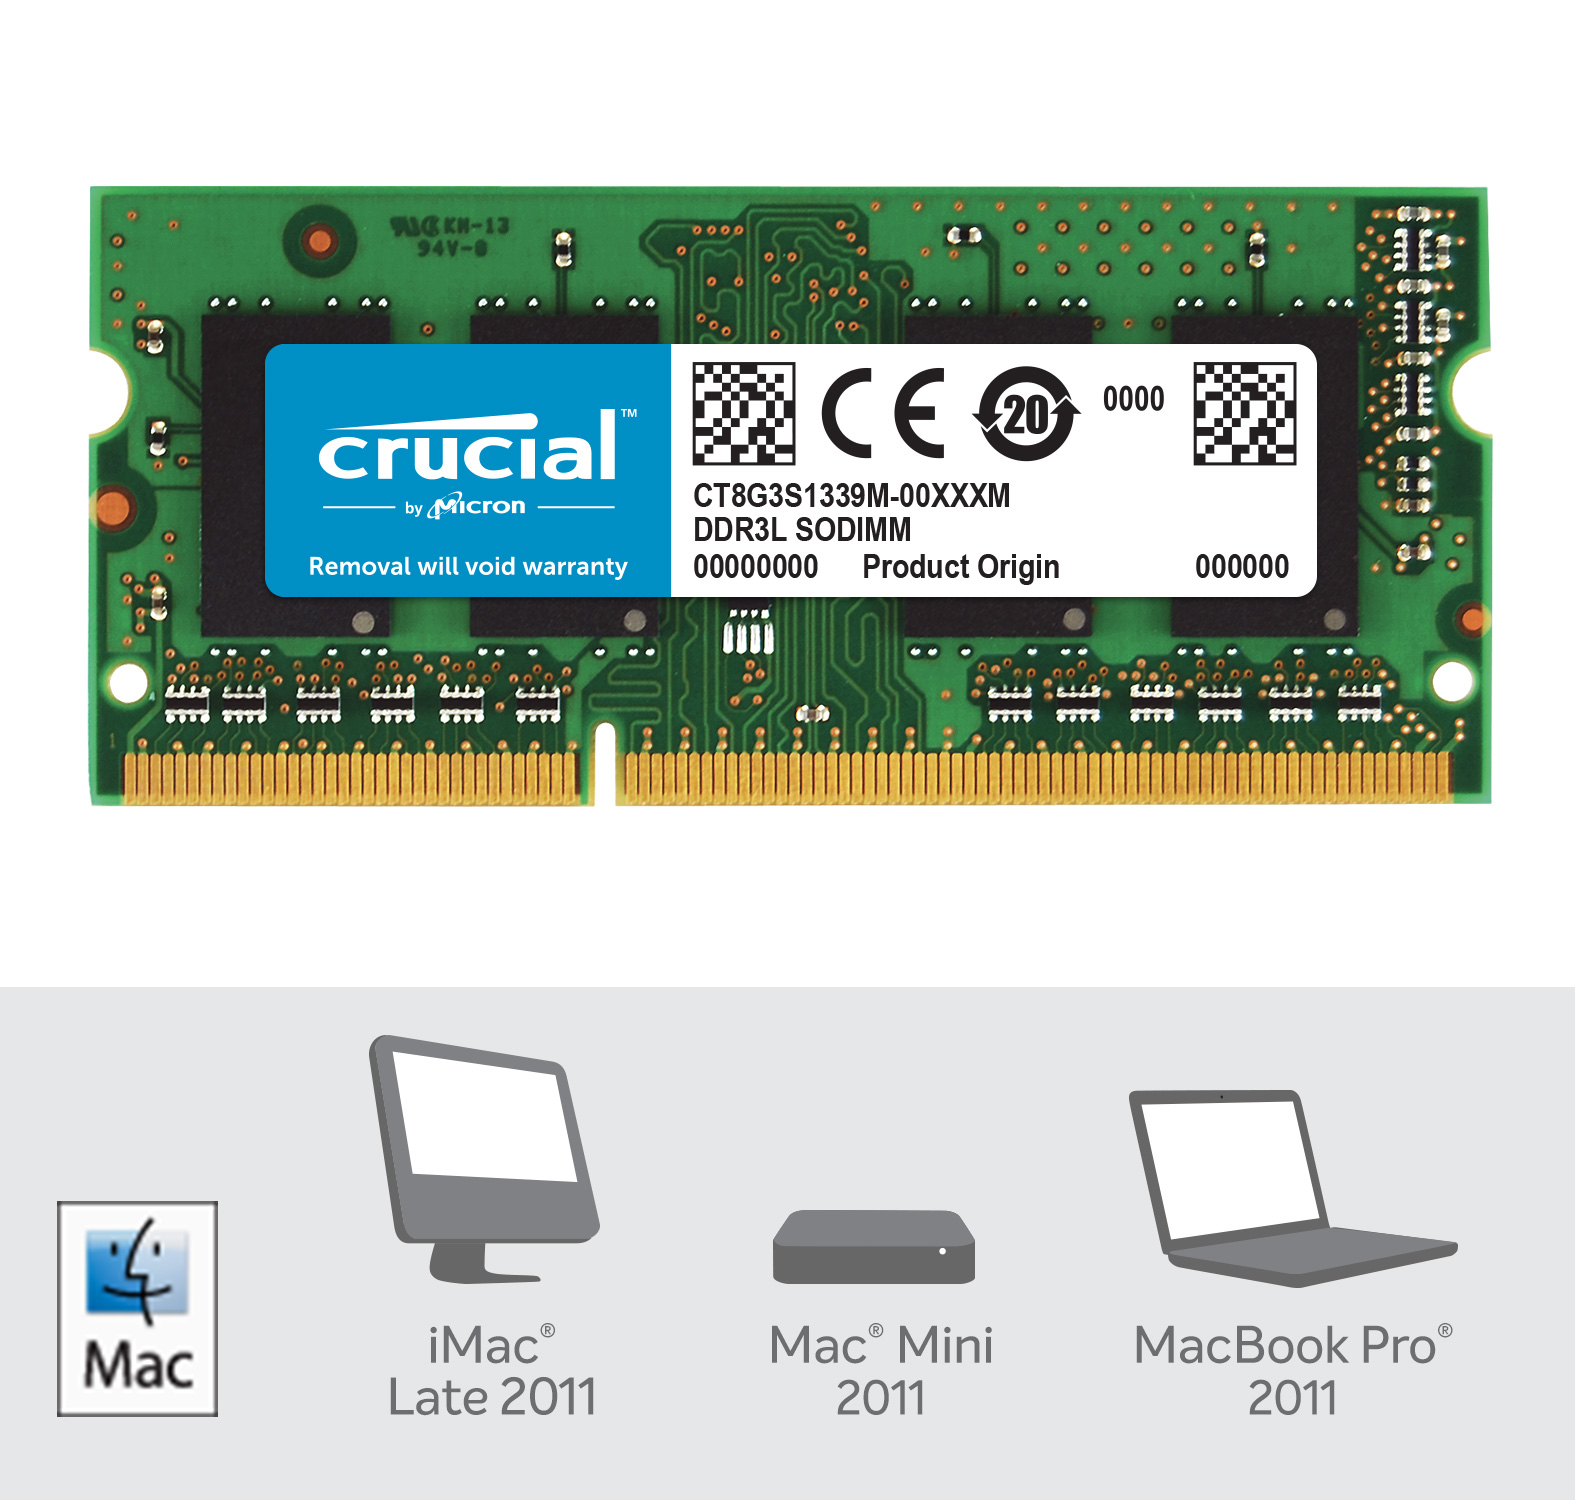 Crucial 8GB DDR3L-1333 SODIMM Memory for Mac- view 2